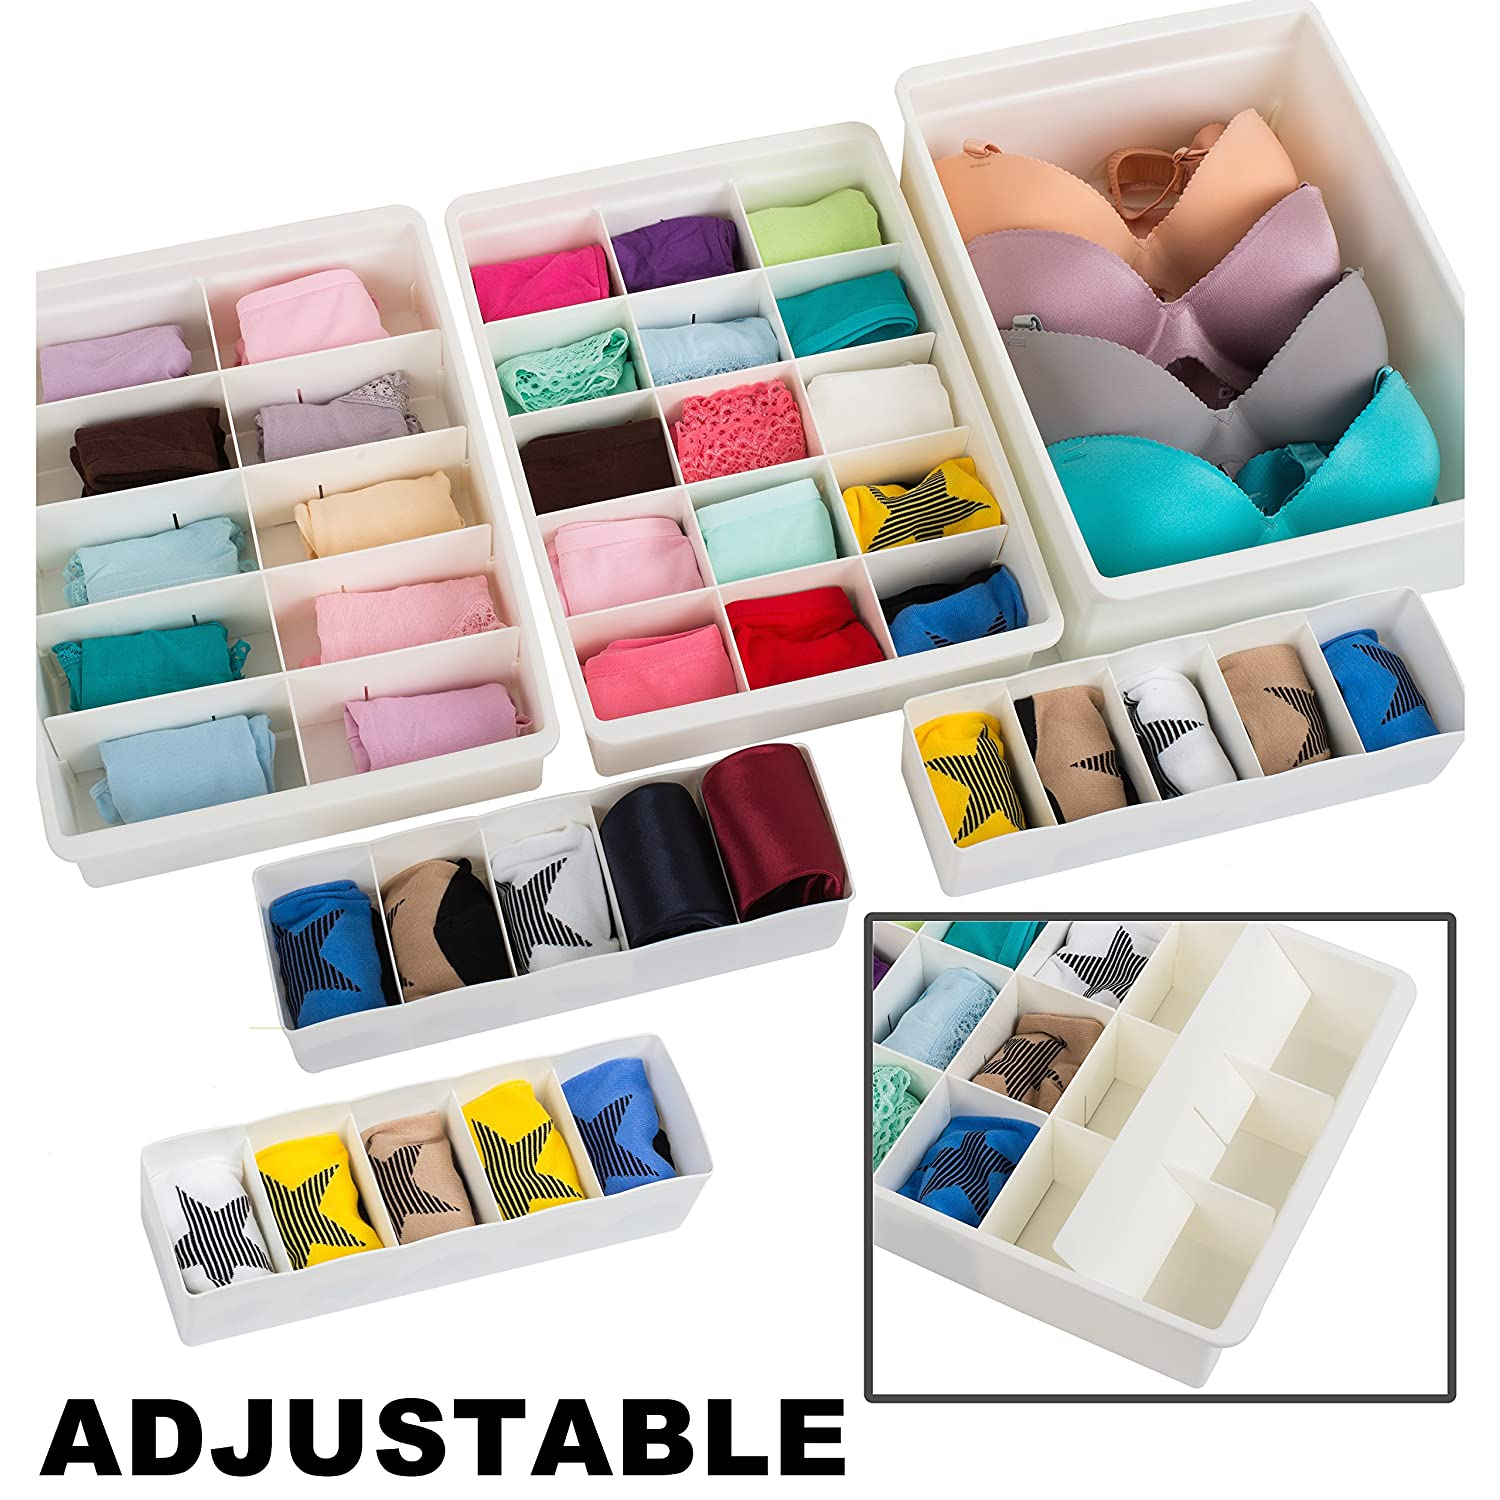 Uncluttered Designs Adjustable Drawer Organizers (6 Set) with Customizable Dividers in Stackable Durable Plastic for Underwear Crafts Baby Clothes ...